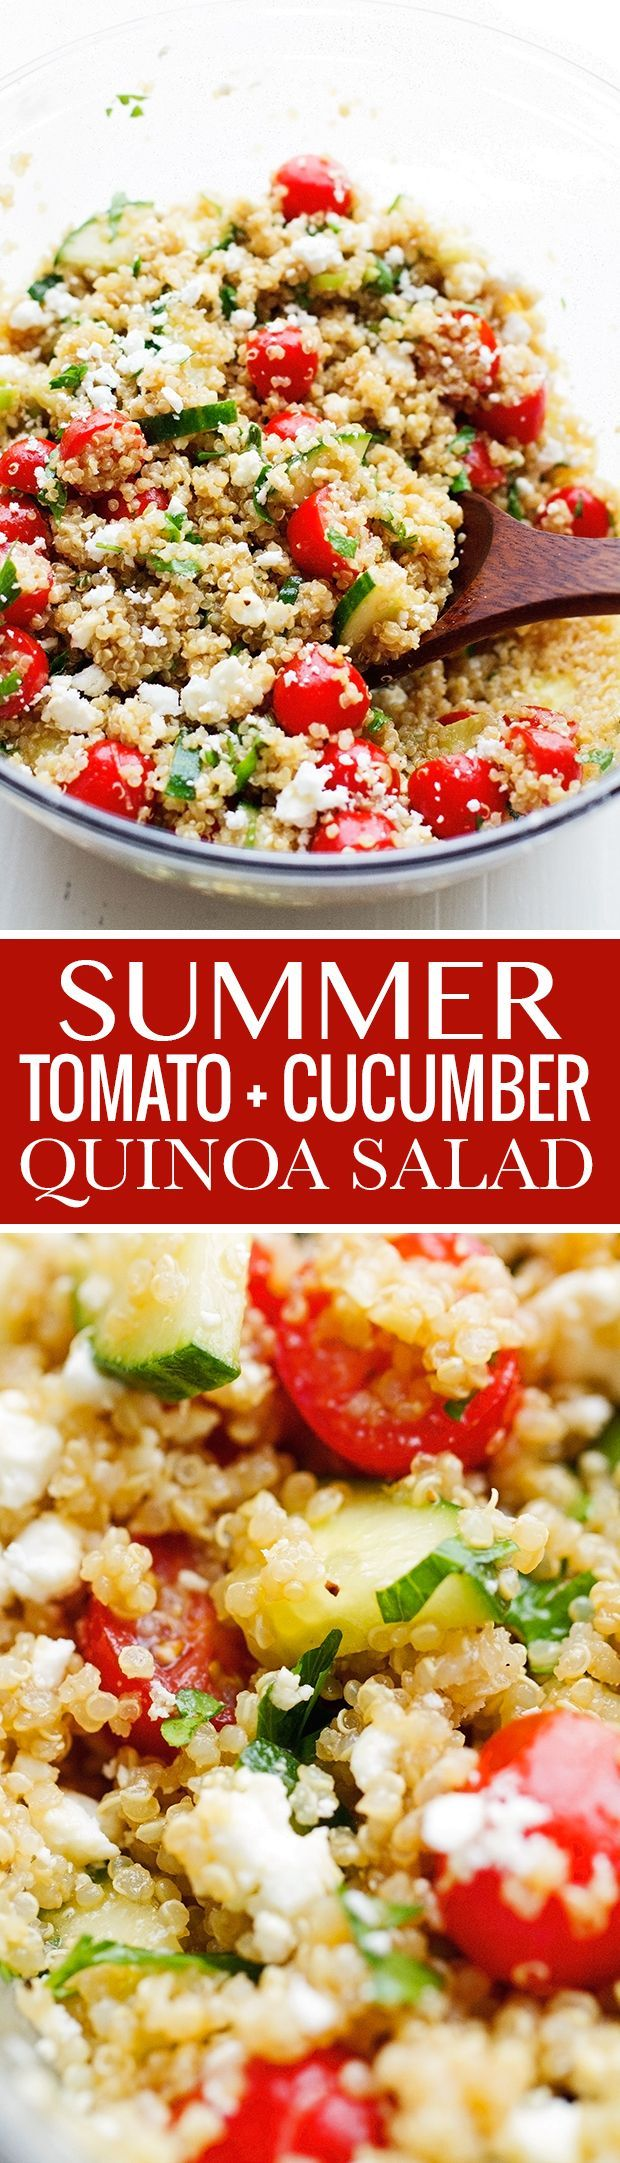 Summer Tomato and Cucumber Quinoa Salad - Try with a different dressing to omit the sugars. Littlespicejar.com @LittleSpiceJar